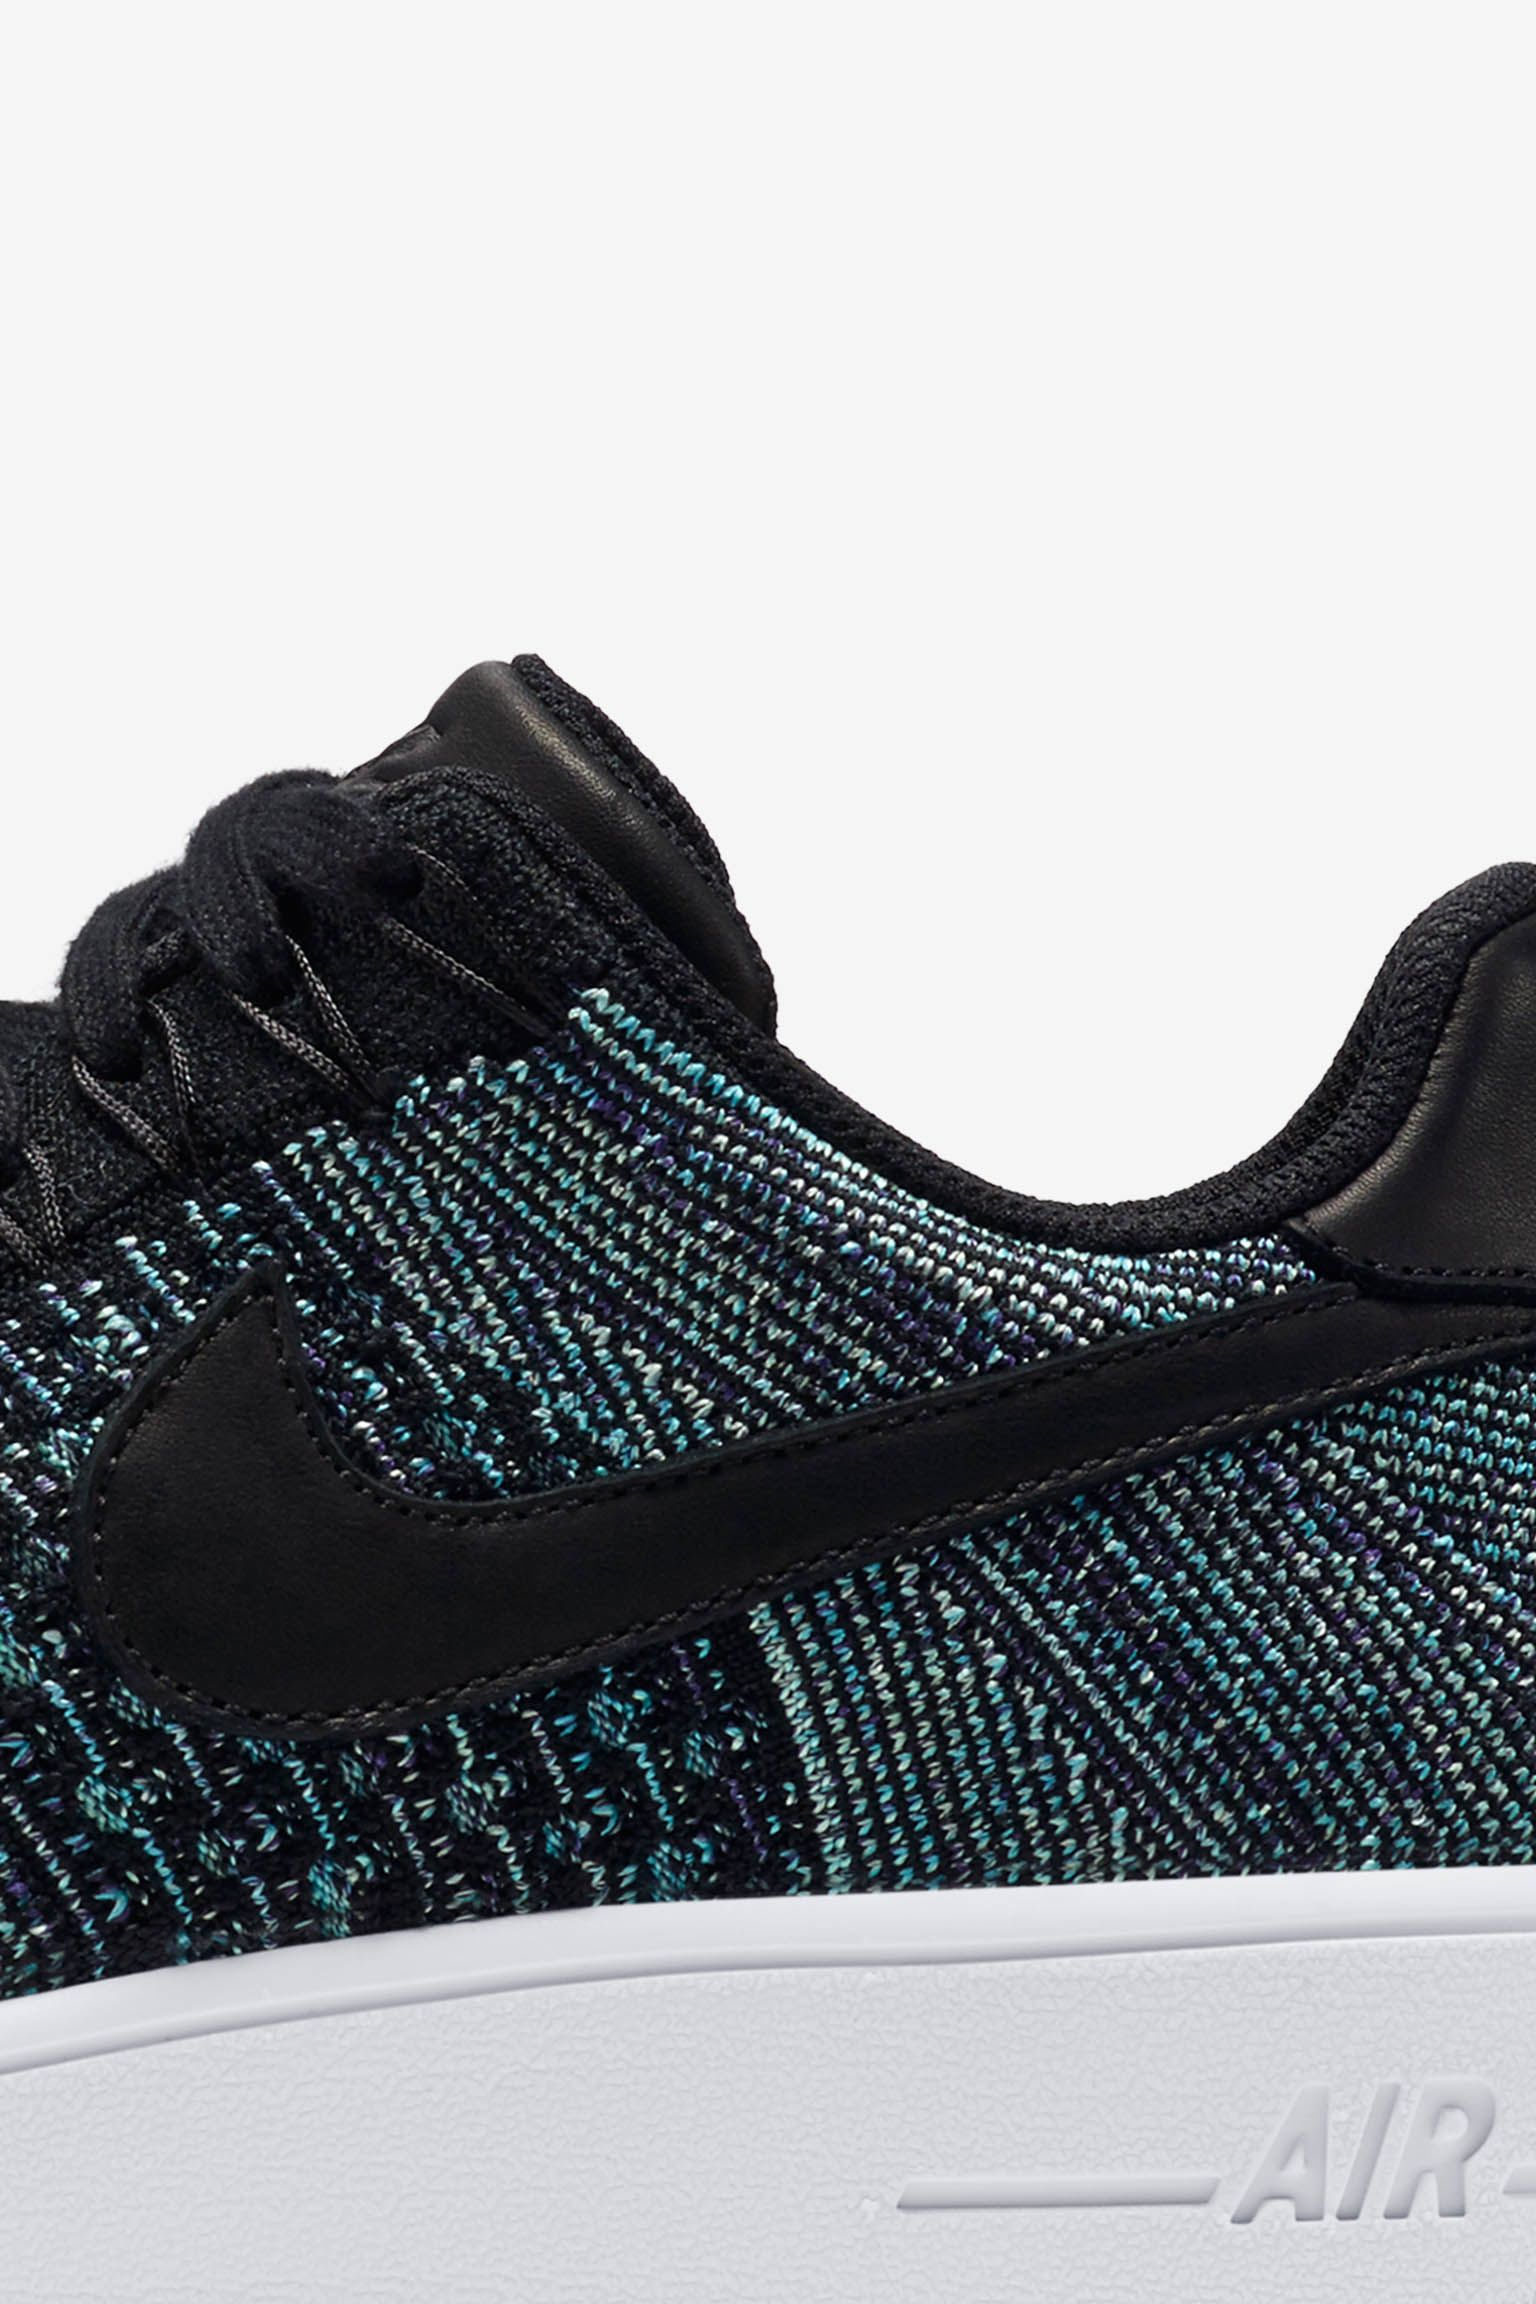 Nike Air Force 1 Low Flyknit 'Vapour Green & Black'